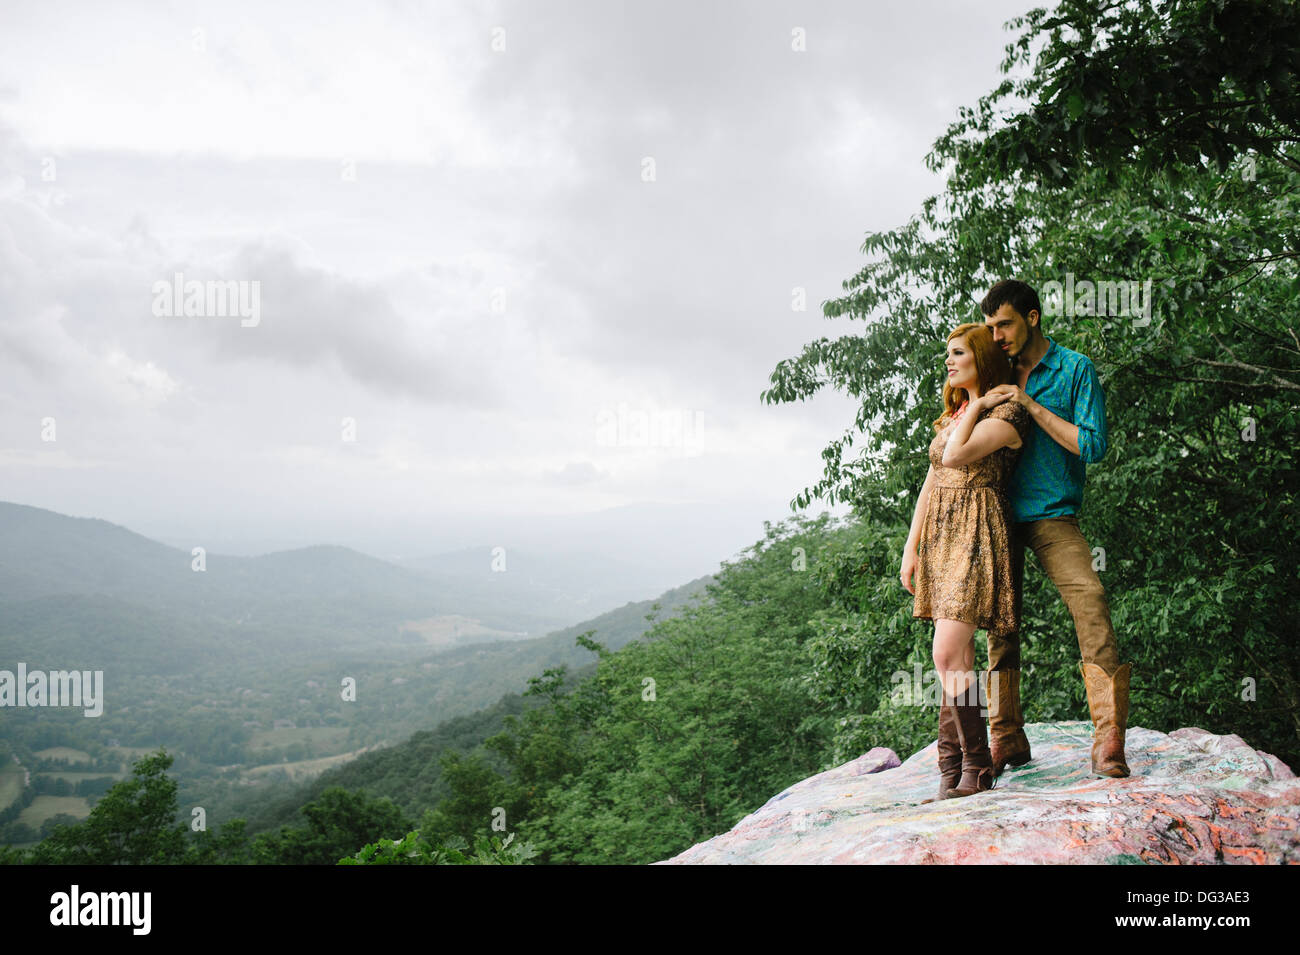 Young Couple Standing on Rock Ledge While Enjoying Scenic View - Stock Image